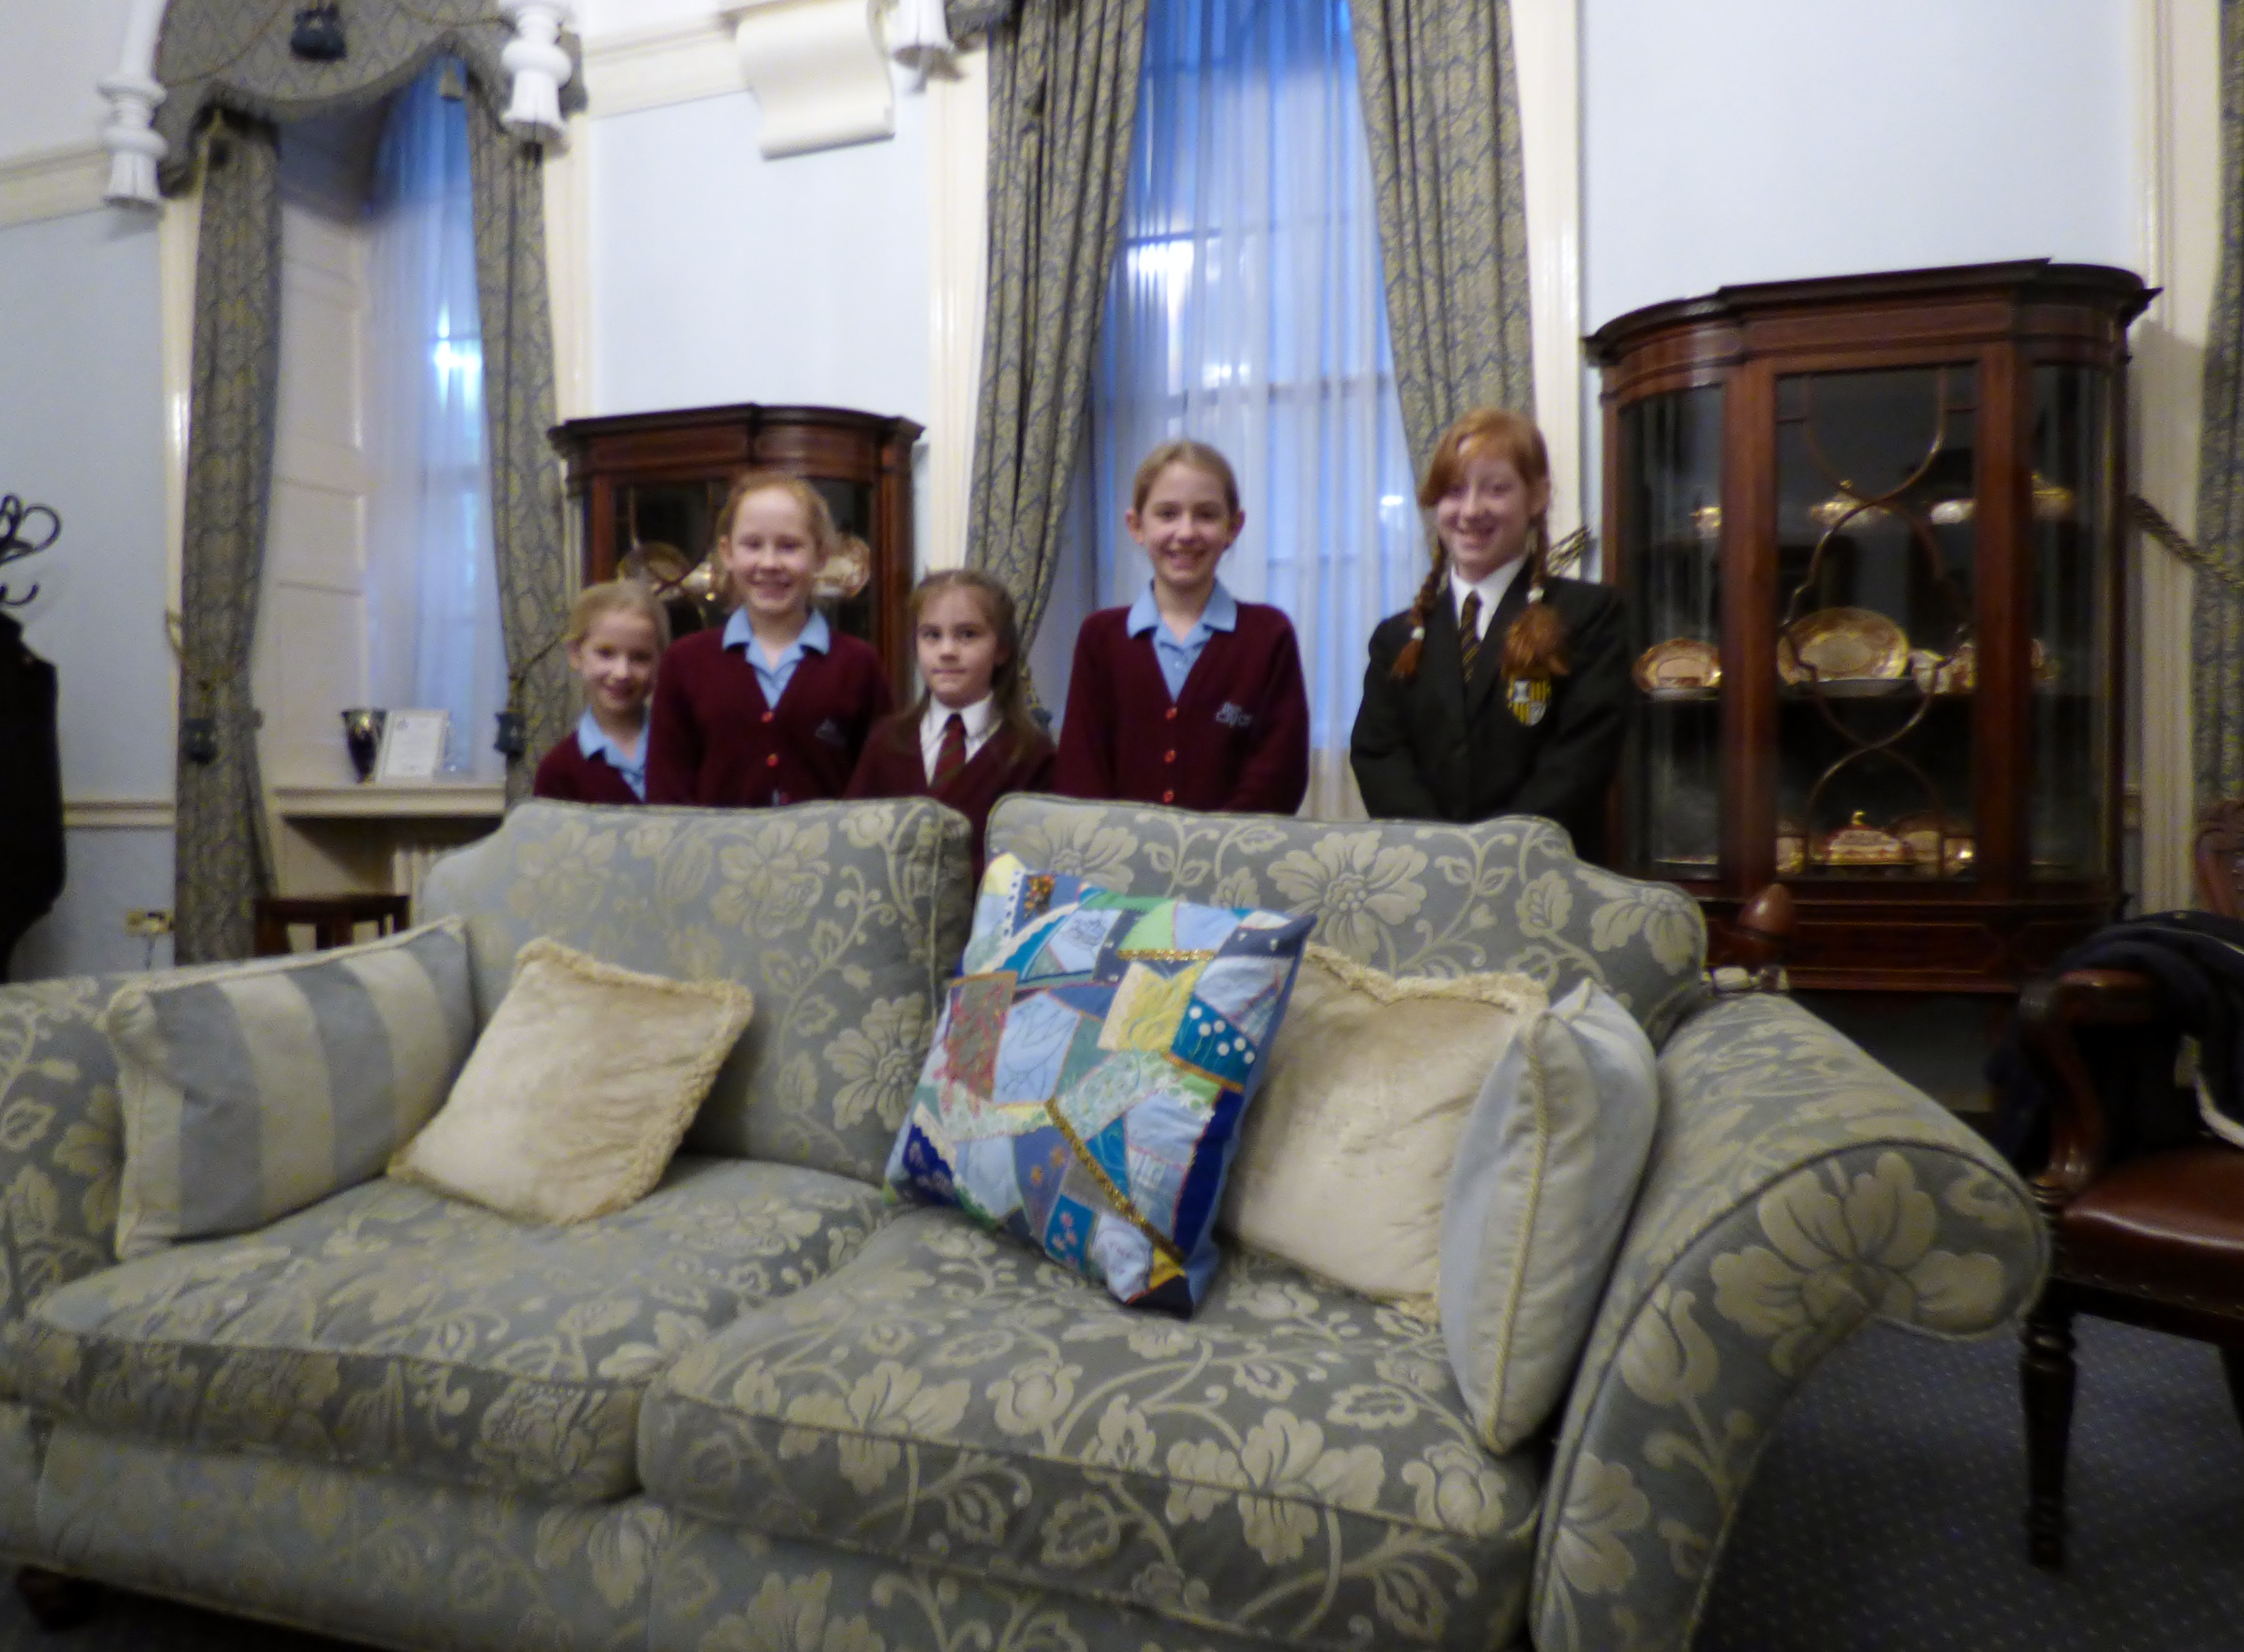 Merseyside YE at Liverpool Town Hall, Jan 2017. We presented a cushion to Liverpool Lord Mayor Cllr. Roz Gladden